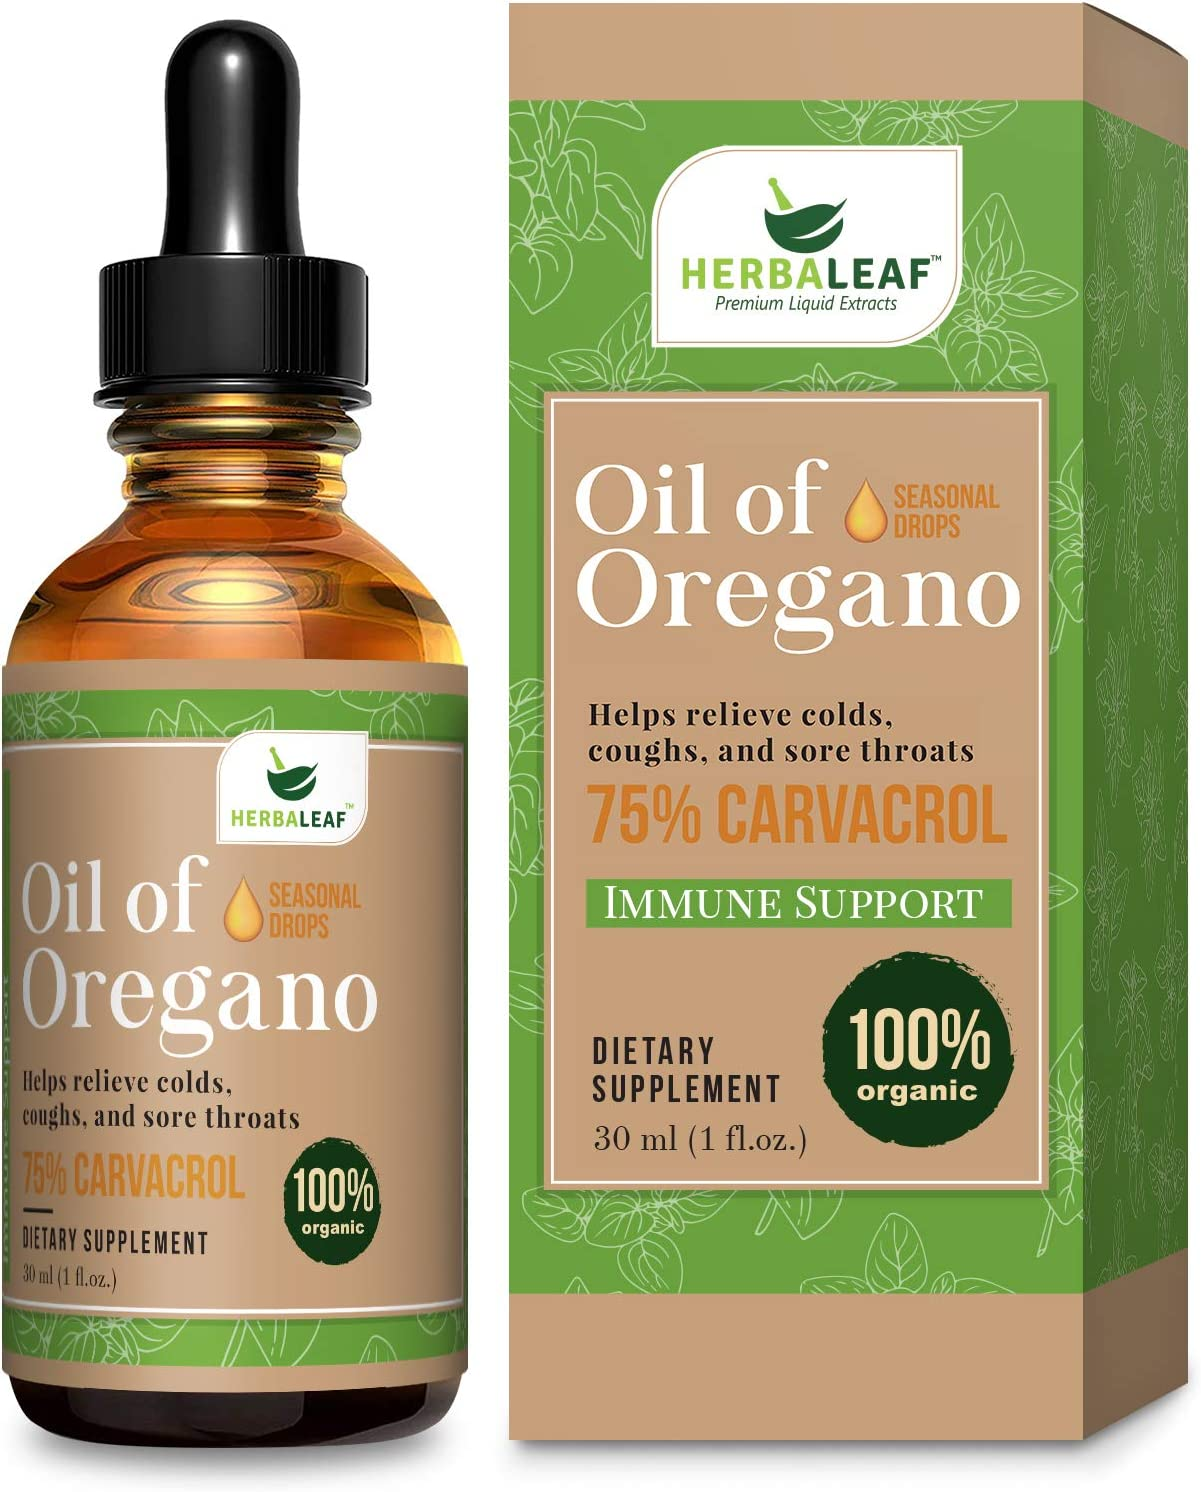 HerbaLeaf Oil of Oregano Immune Defense, Helps Relieve Colds, Coughs, Sore Throats- Gut Support. (1 Fl Oz)